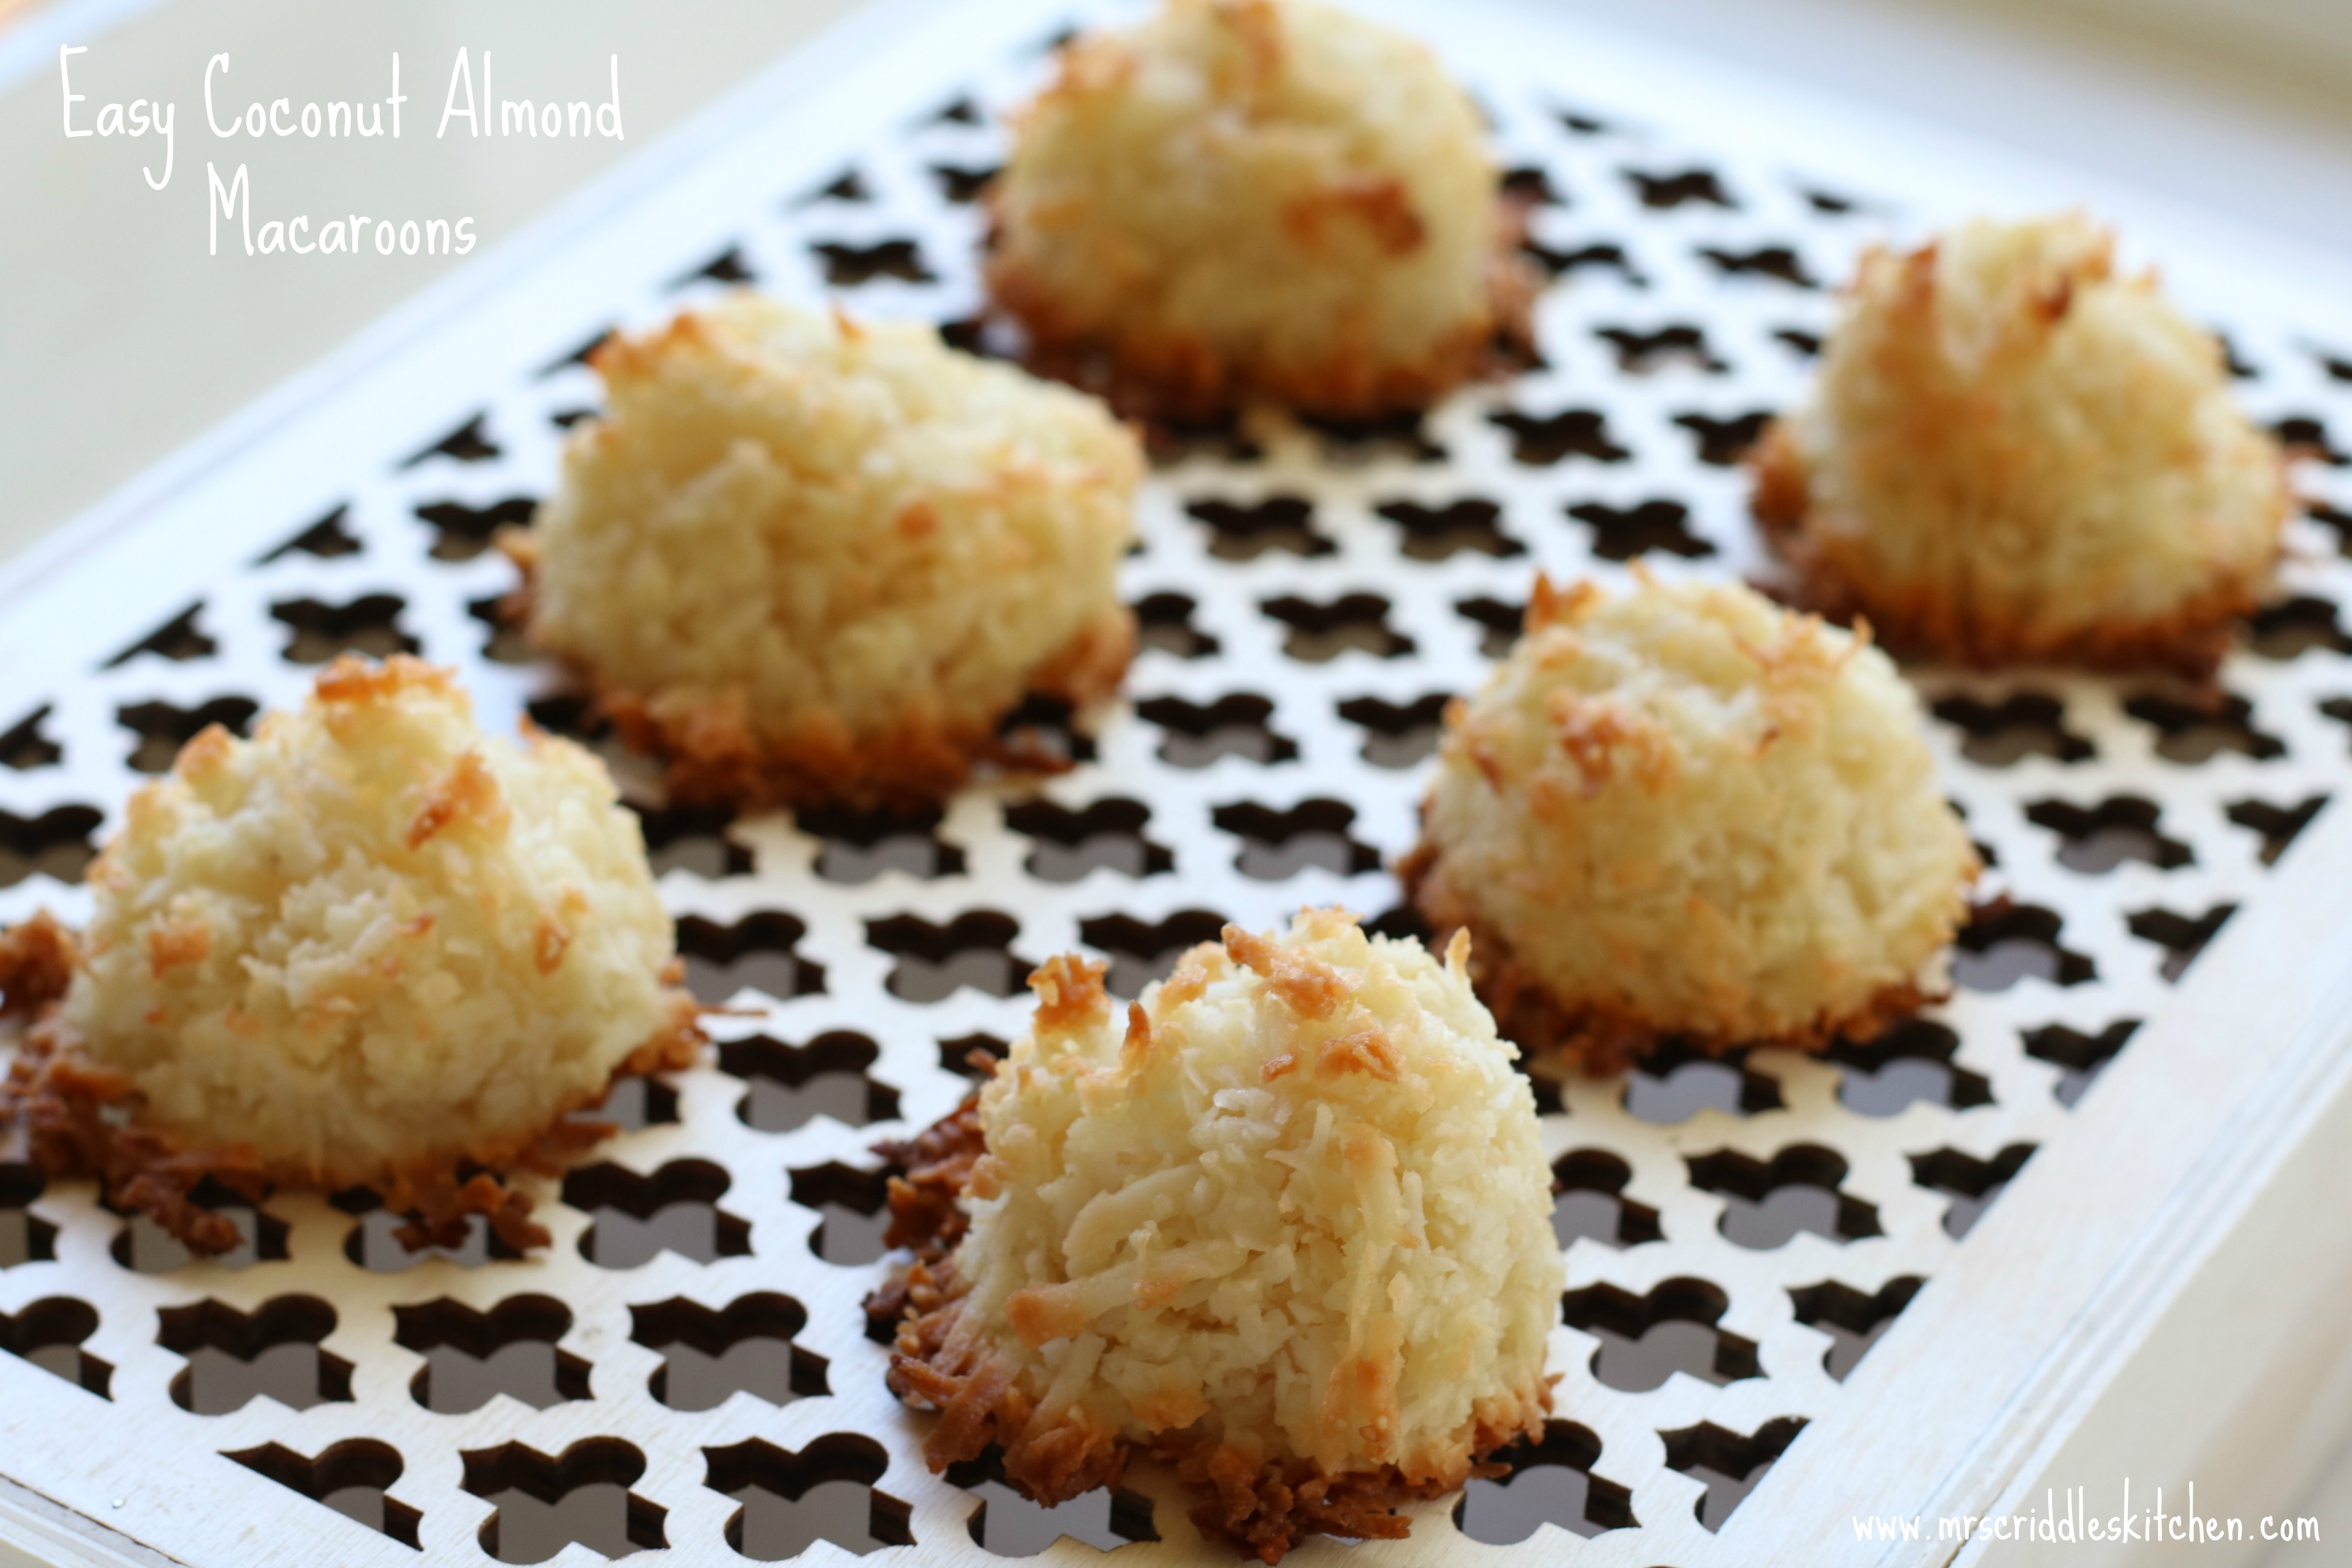 Easy Coconut Almond Macaroons Mrs Criddles Kitchen